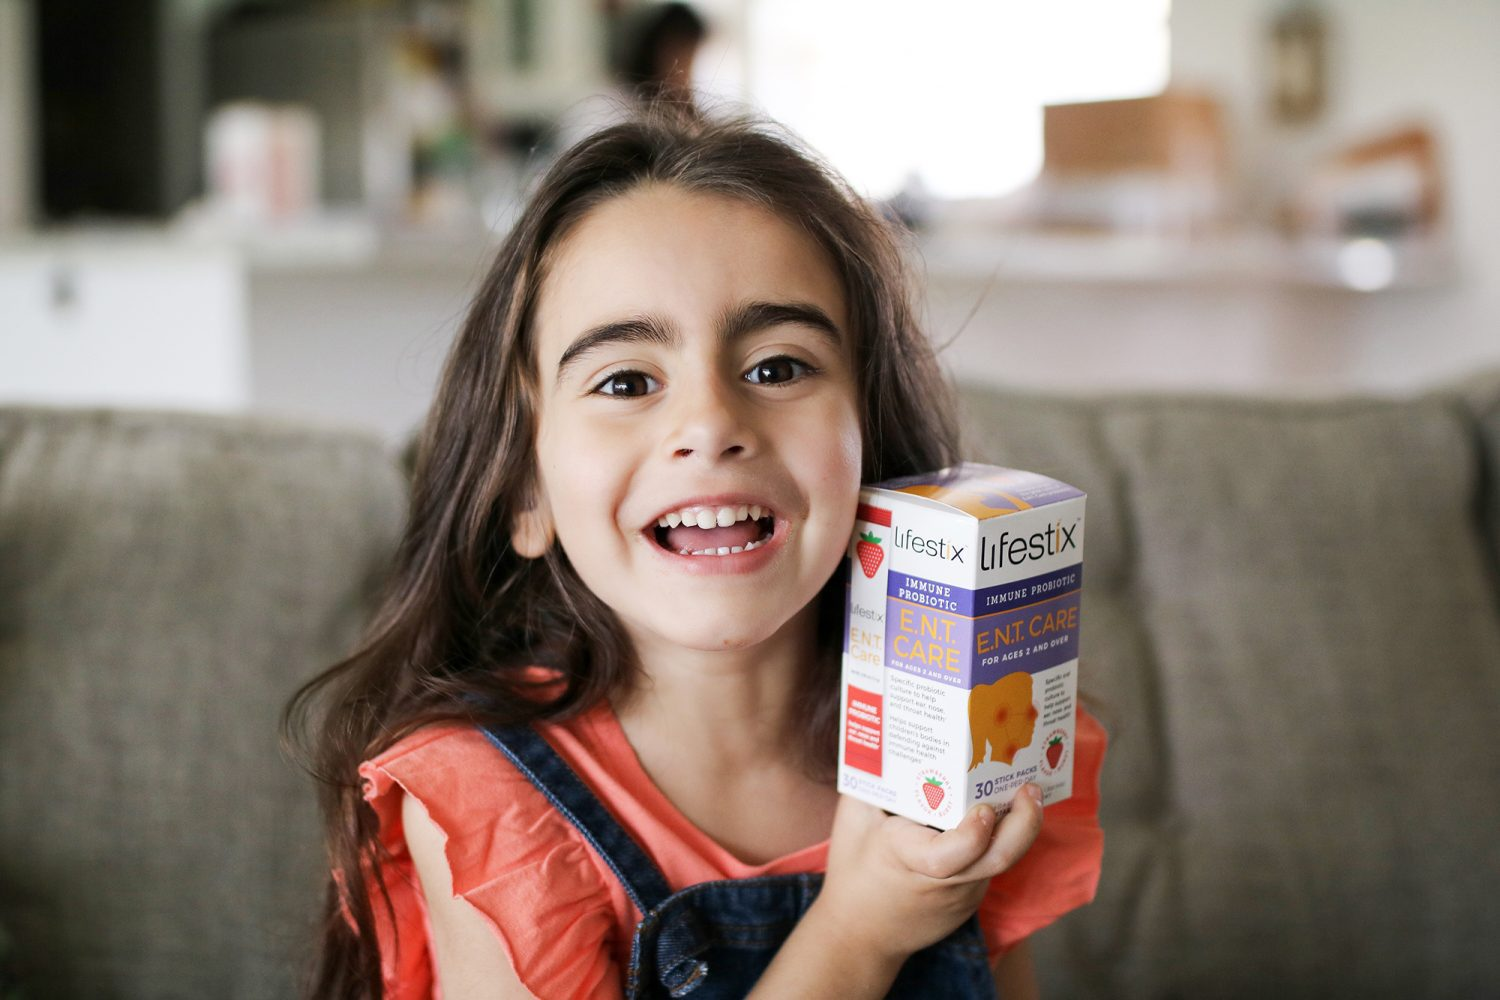 lifestix, e.n.t. care, probiotics, probiotics for kids, family probiotics, staying healthy, 2018, mom blogger, blog, healthy lifestyle, healthy blogger